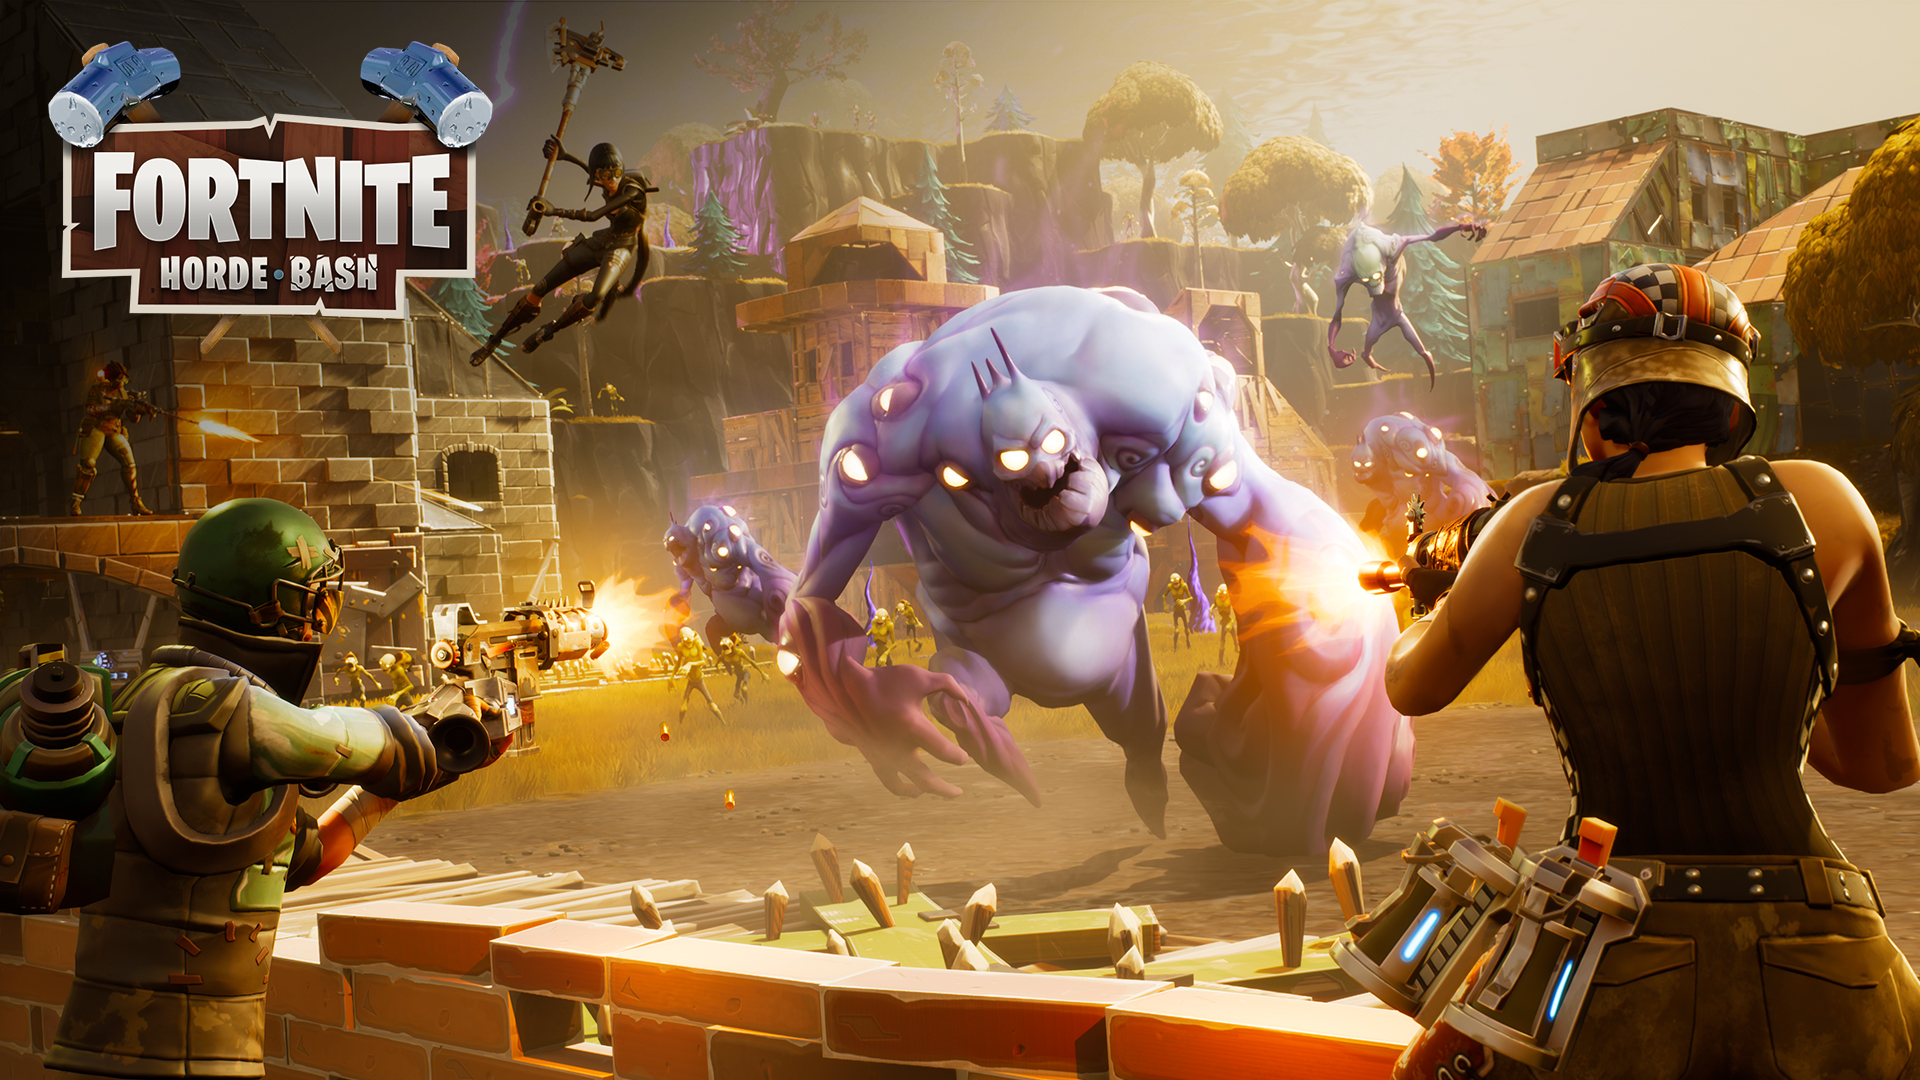 Fortnite%2Fblog%2Fea-1-7-patch-notes%2FENG-HB-GamePlay-1920x1080-2ff0fdc9bfd0e66aa6f59e914bbf8155d8c337bb